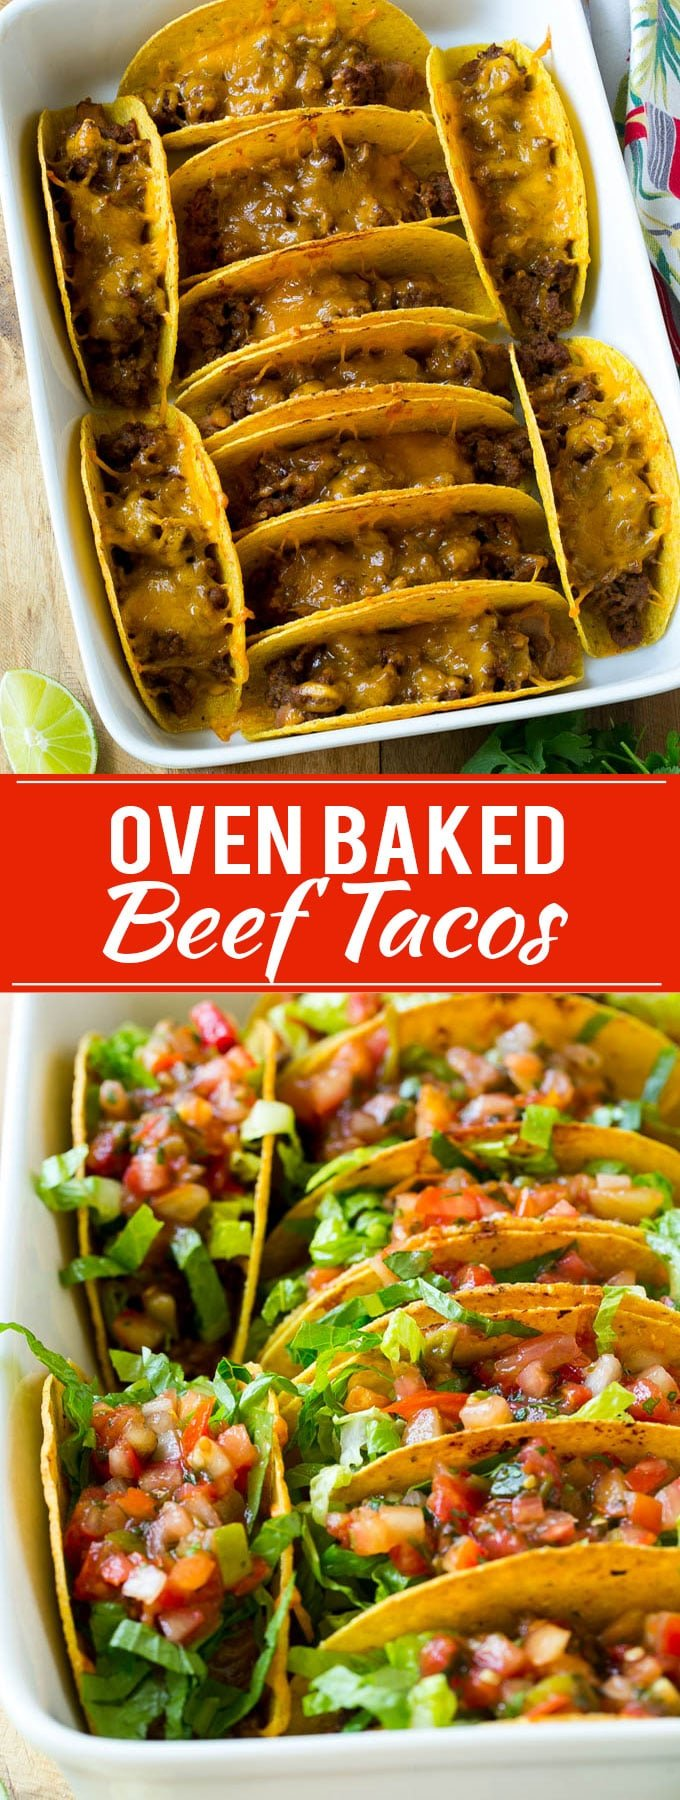 Oven Baked Beef Tacos Recipe | Crispy Beef Tacos | Beef Taco Recipe | Baked Taco Recipe #tacos #beef #groundbeef #beeftacos #tacotuesday #dinner #dinneratthezoo